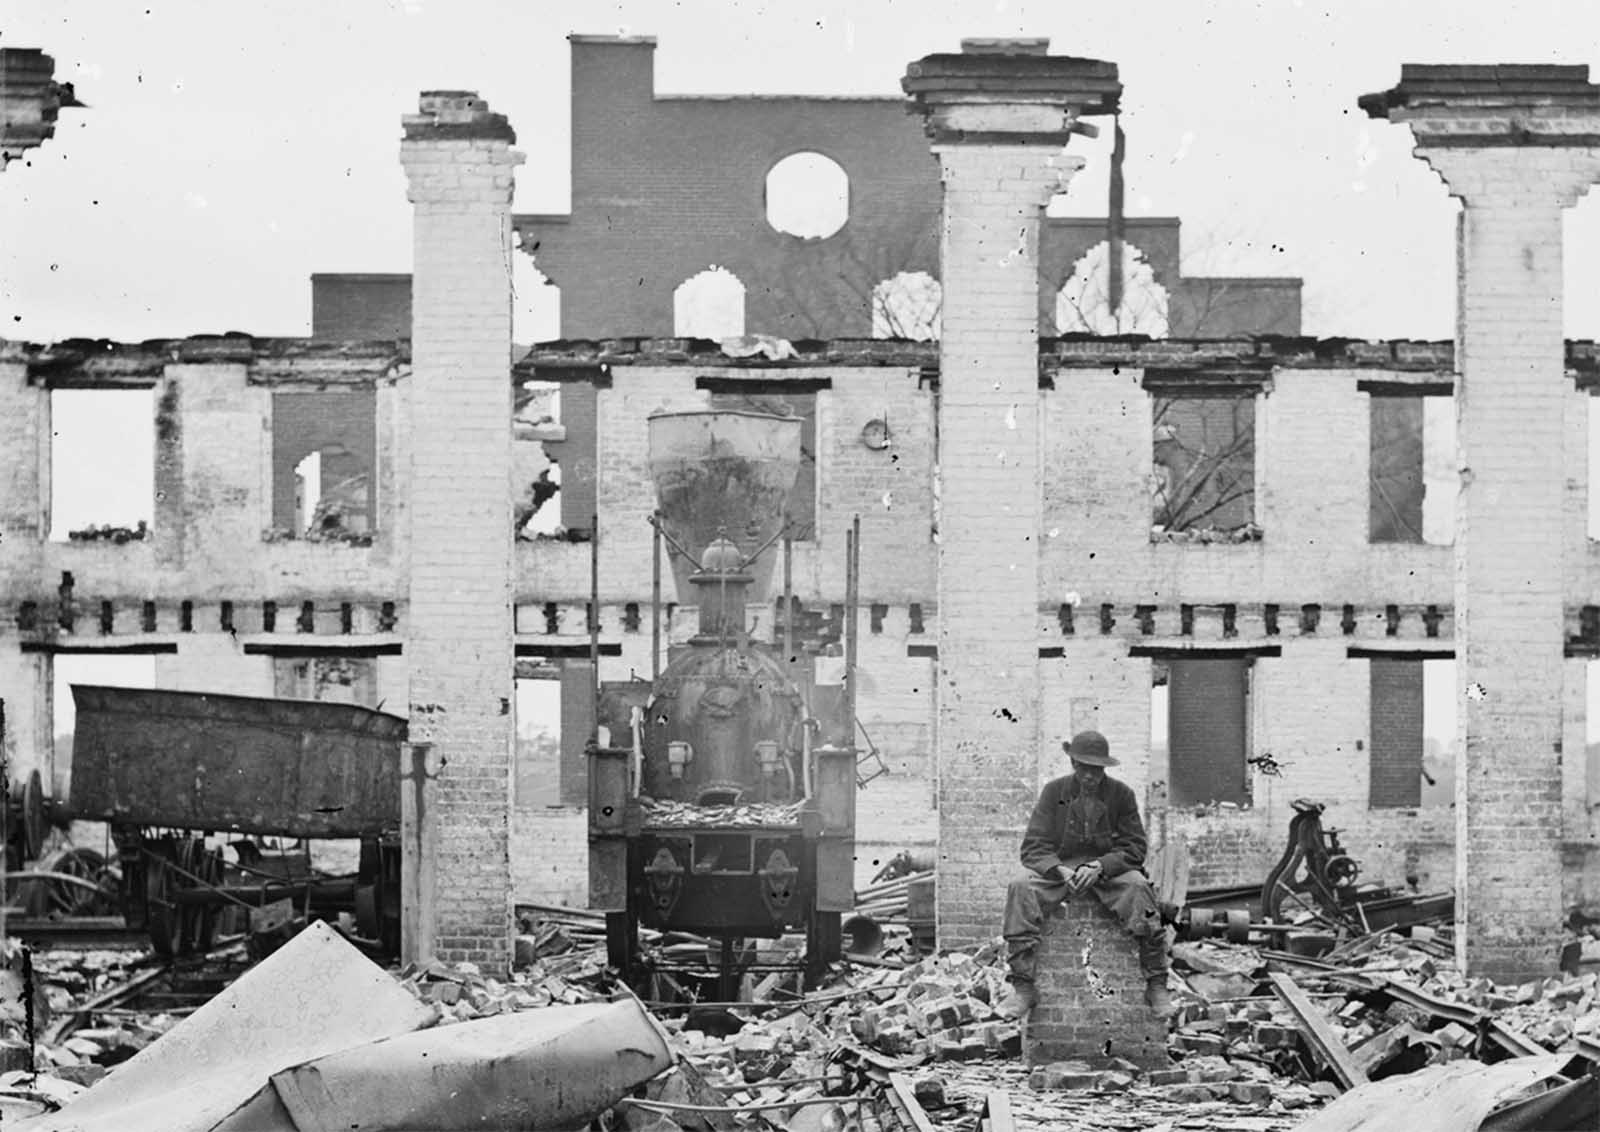 A damaged locomotive among the ruins of the Richmond & Petersburg Railroad depot, in Richmond, Virginia, in April of 1865.